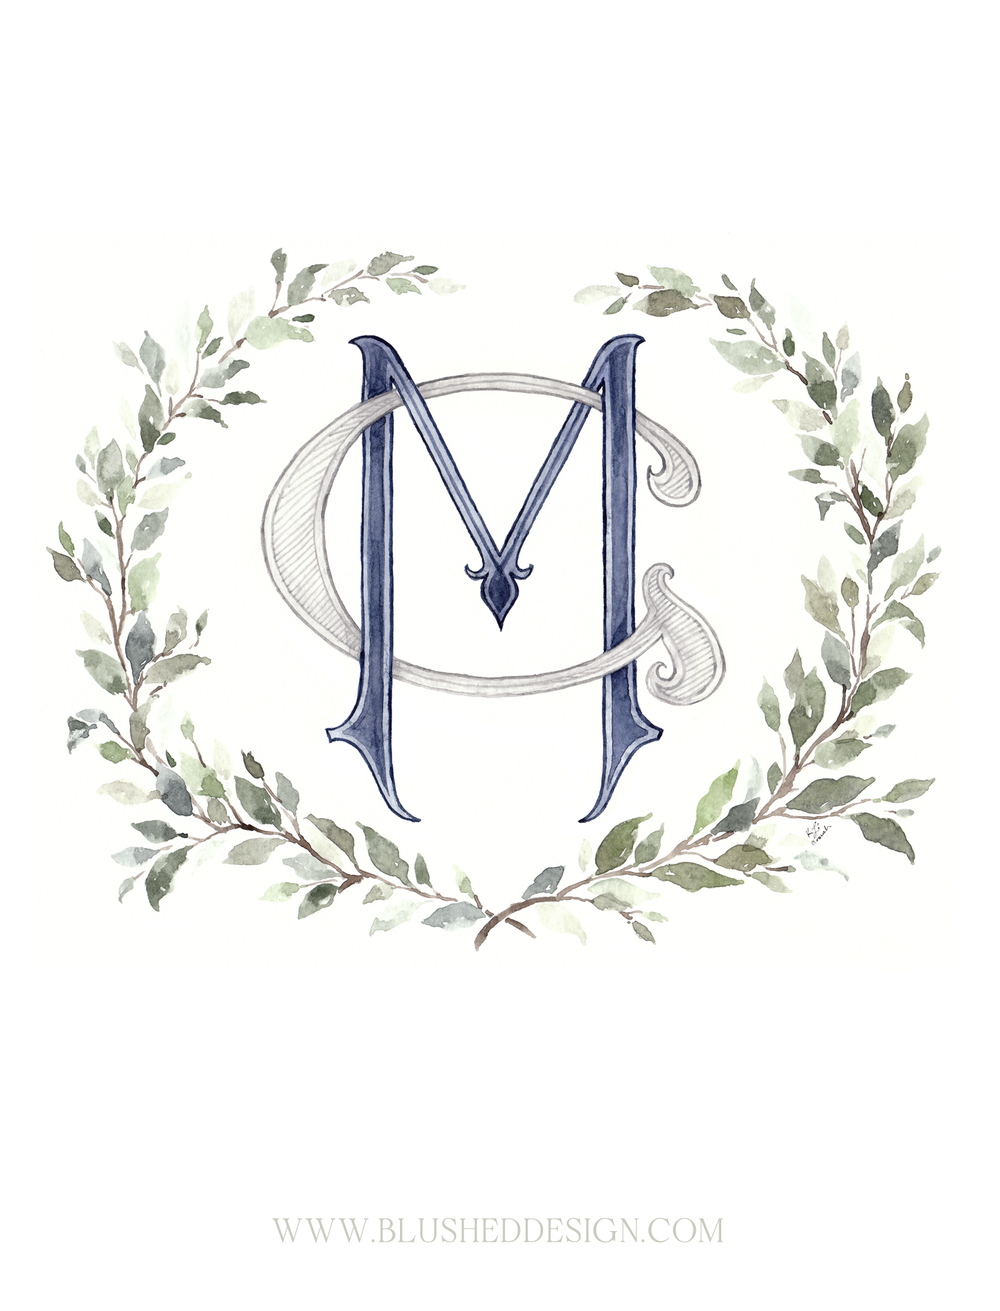 Custom watercolor monogram surrounded by a beautiful greenery wreath.  A beautiful addition to your wedding details, this custom monogram represents both the couple as individuals as well as their new family unit together.  Blushed Design: Wedding INvitations and Fine Art Portraits. #custommonogram #watercolorcrest #greenerywreath #watercolormonogramwreath